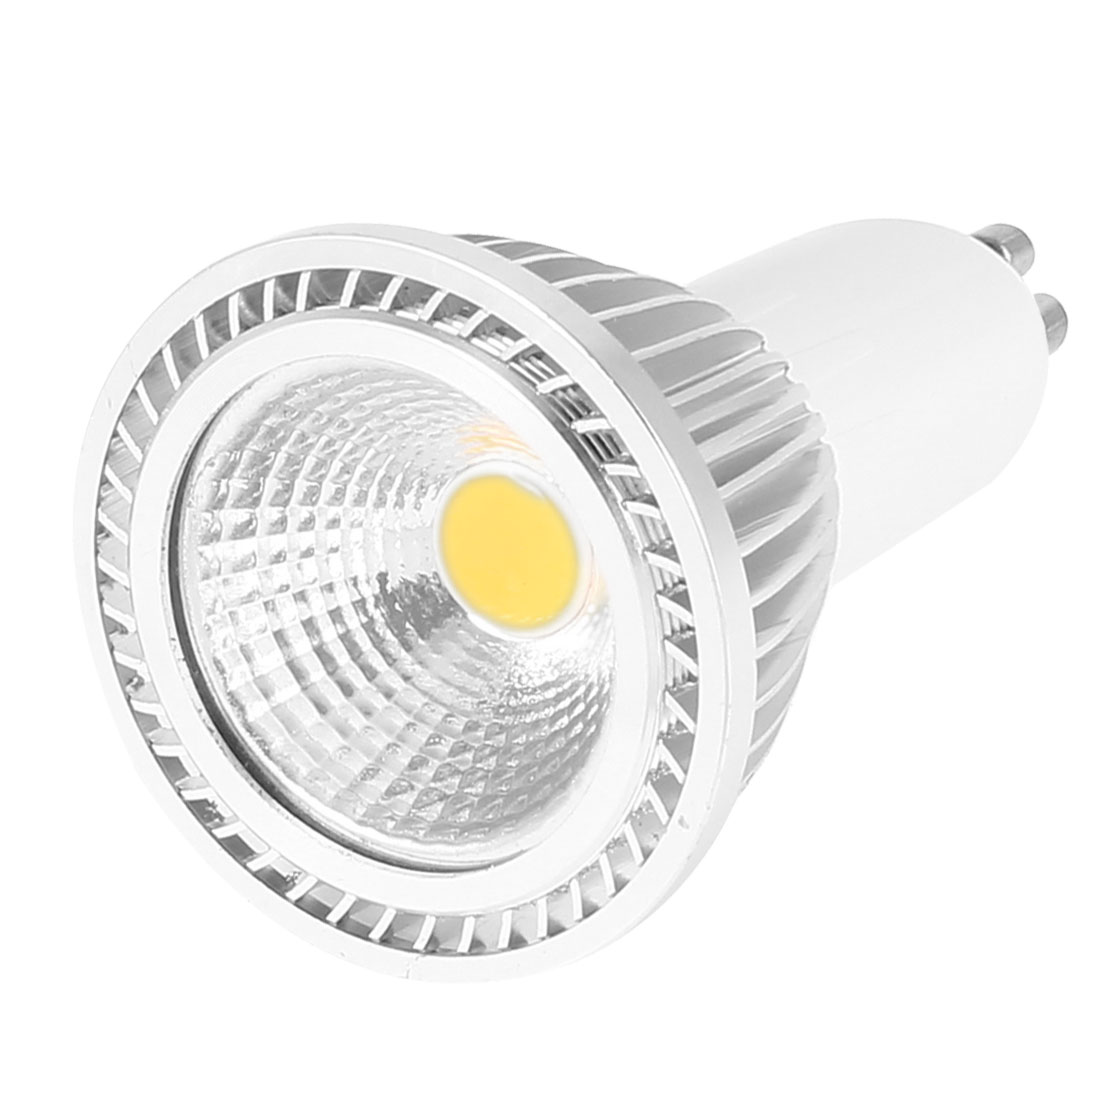 AC 85-265V GU10 Base 5W Power Warm White LED Light Ceiling COB Spotlight Lamp Bulb